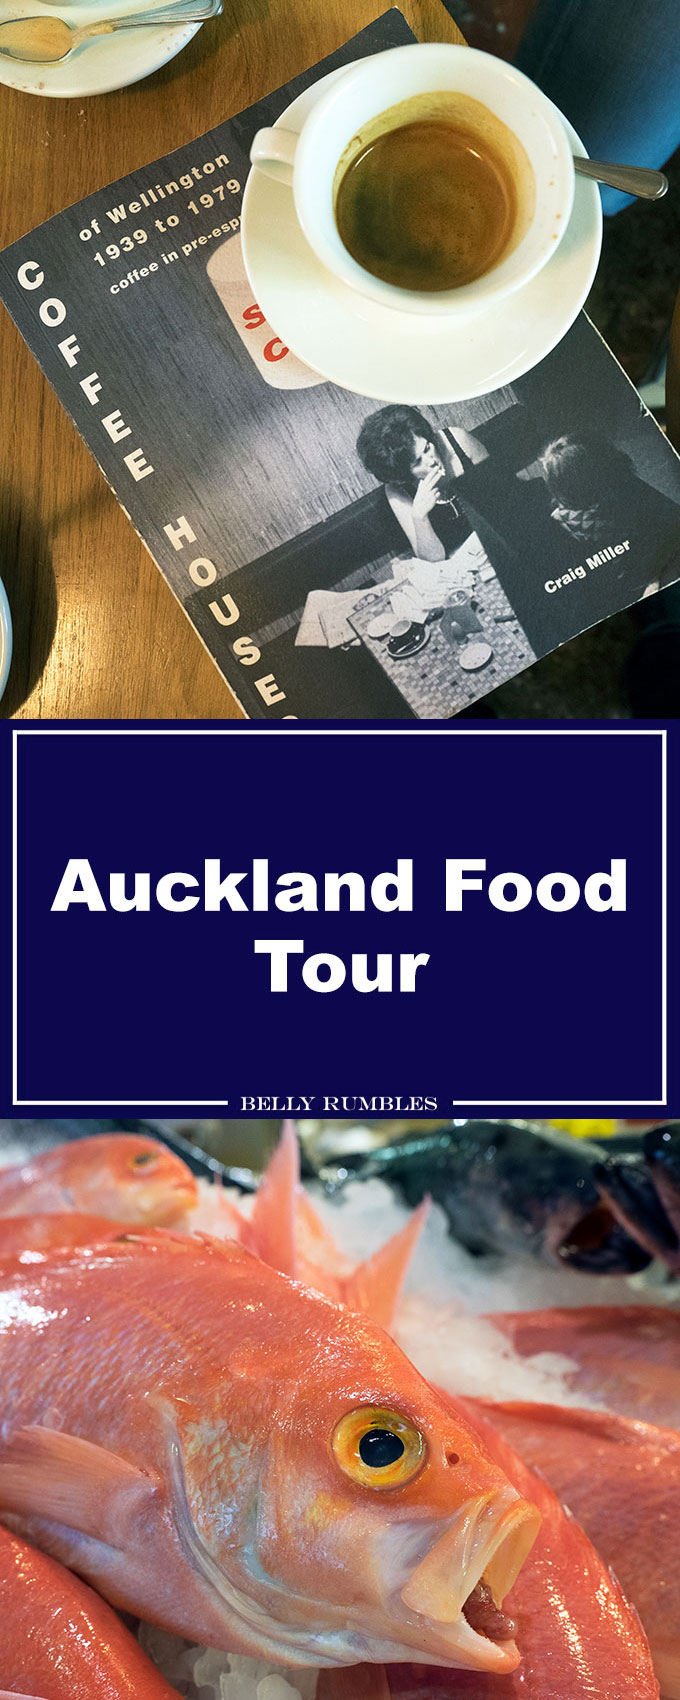 Auckland Food Tour, The Big Foody Tastebud Tour. Food tour around Auckland New Zealand, visiting the Fish Markets, and other various food gems.